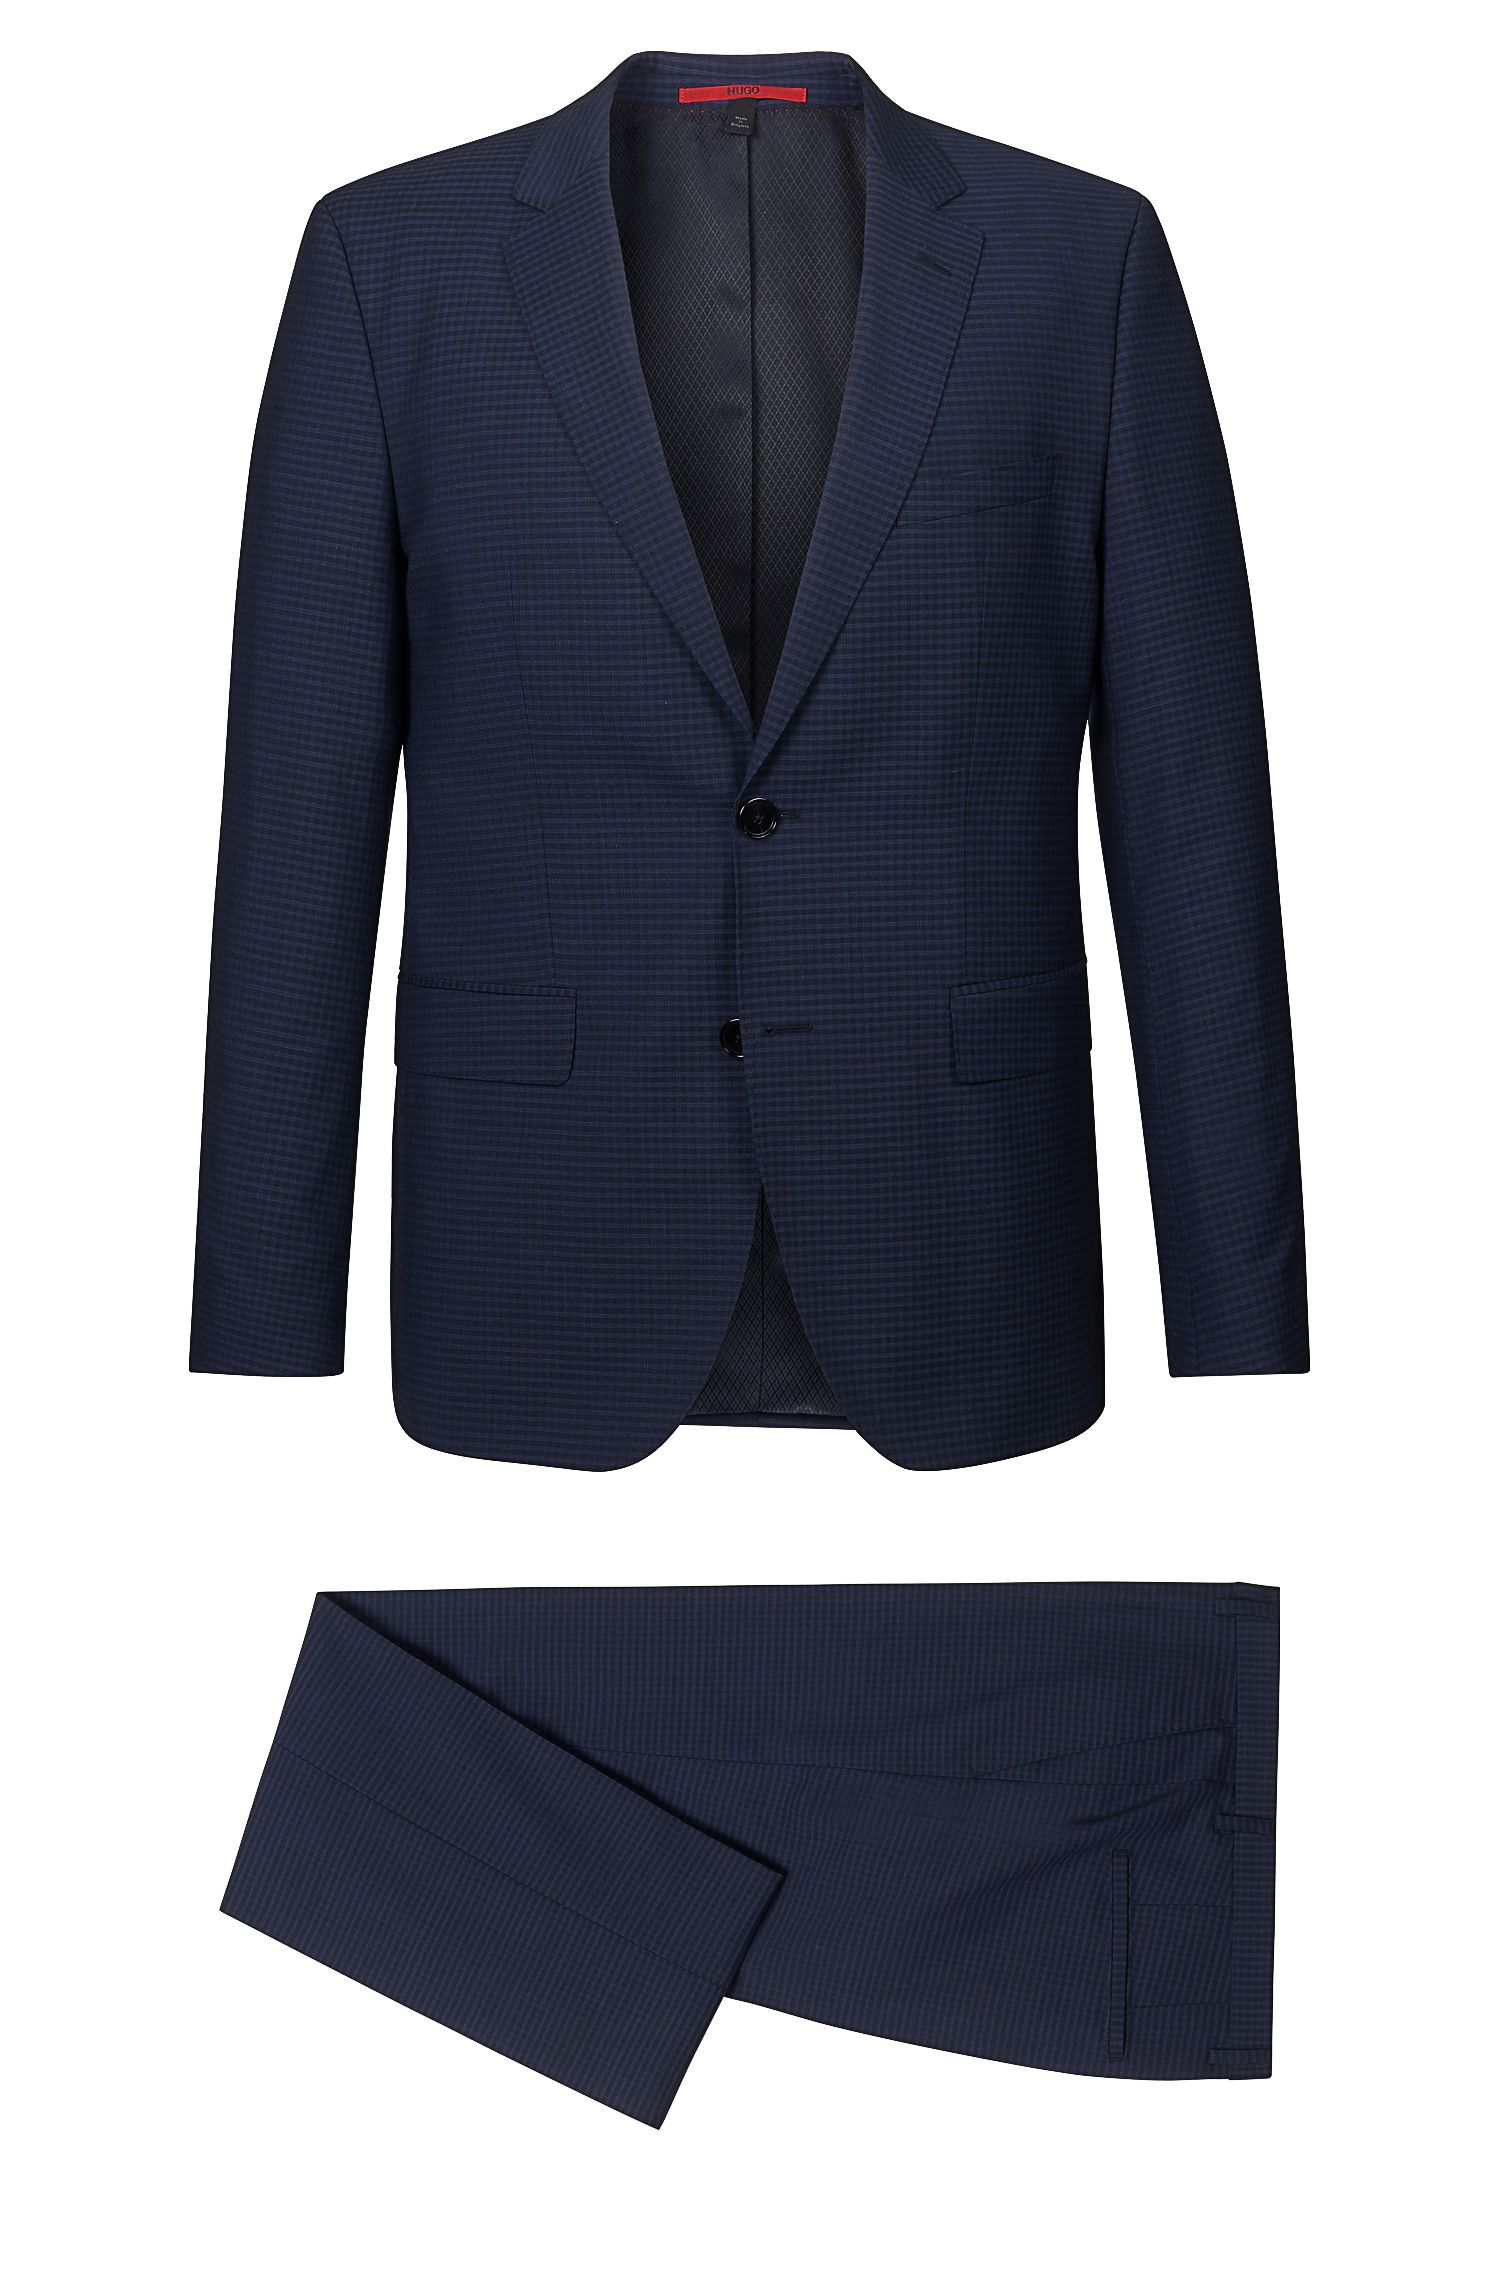 'C Jeffrey/C Simmons' | Slim Fit, Virgin Wool Checked Suit